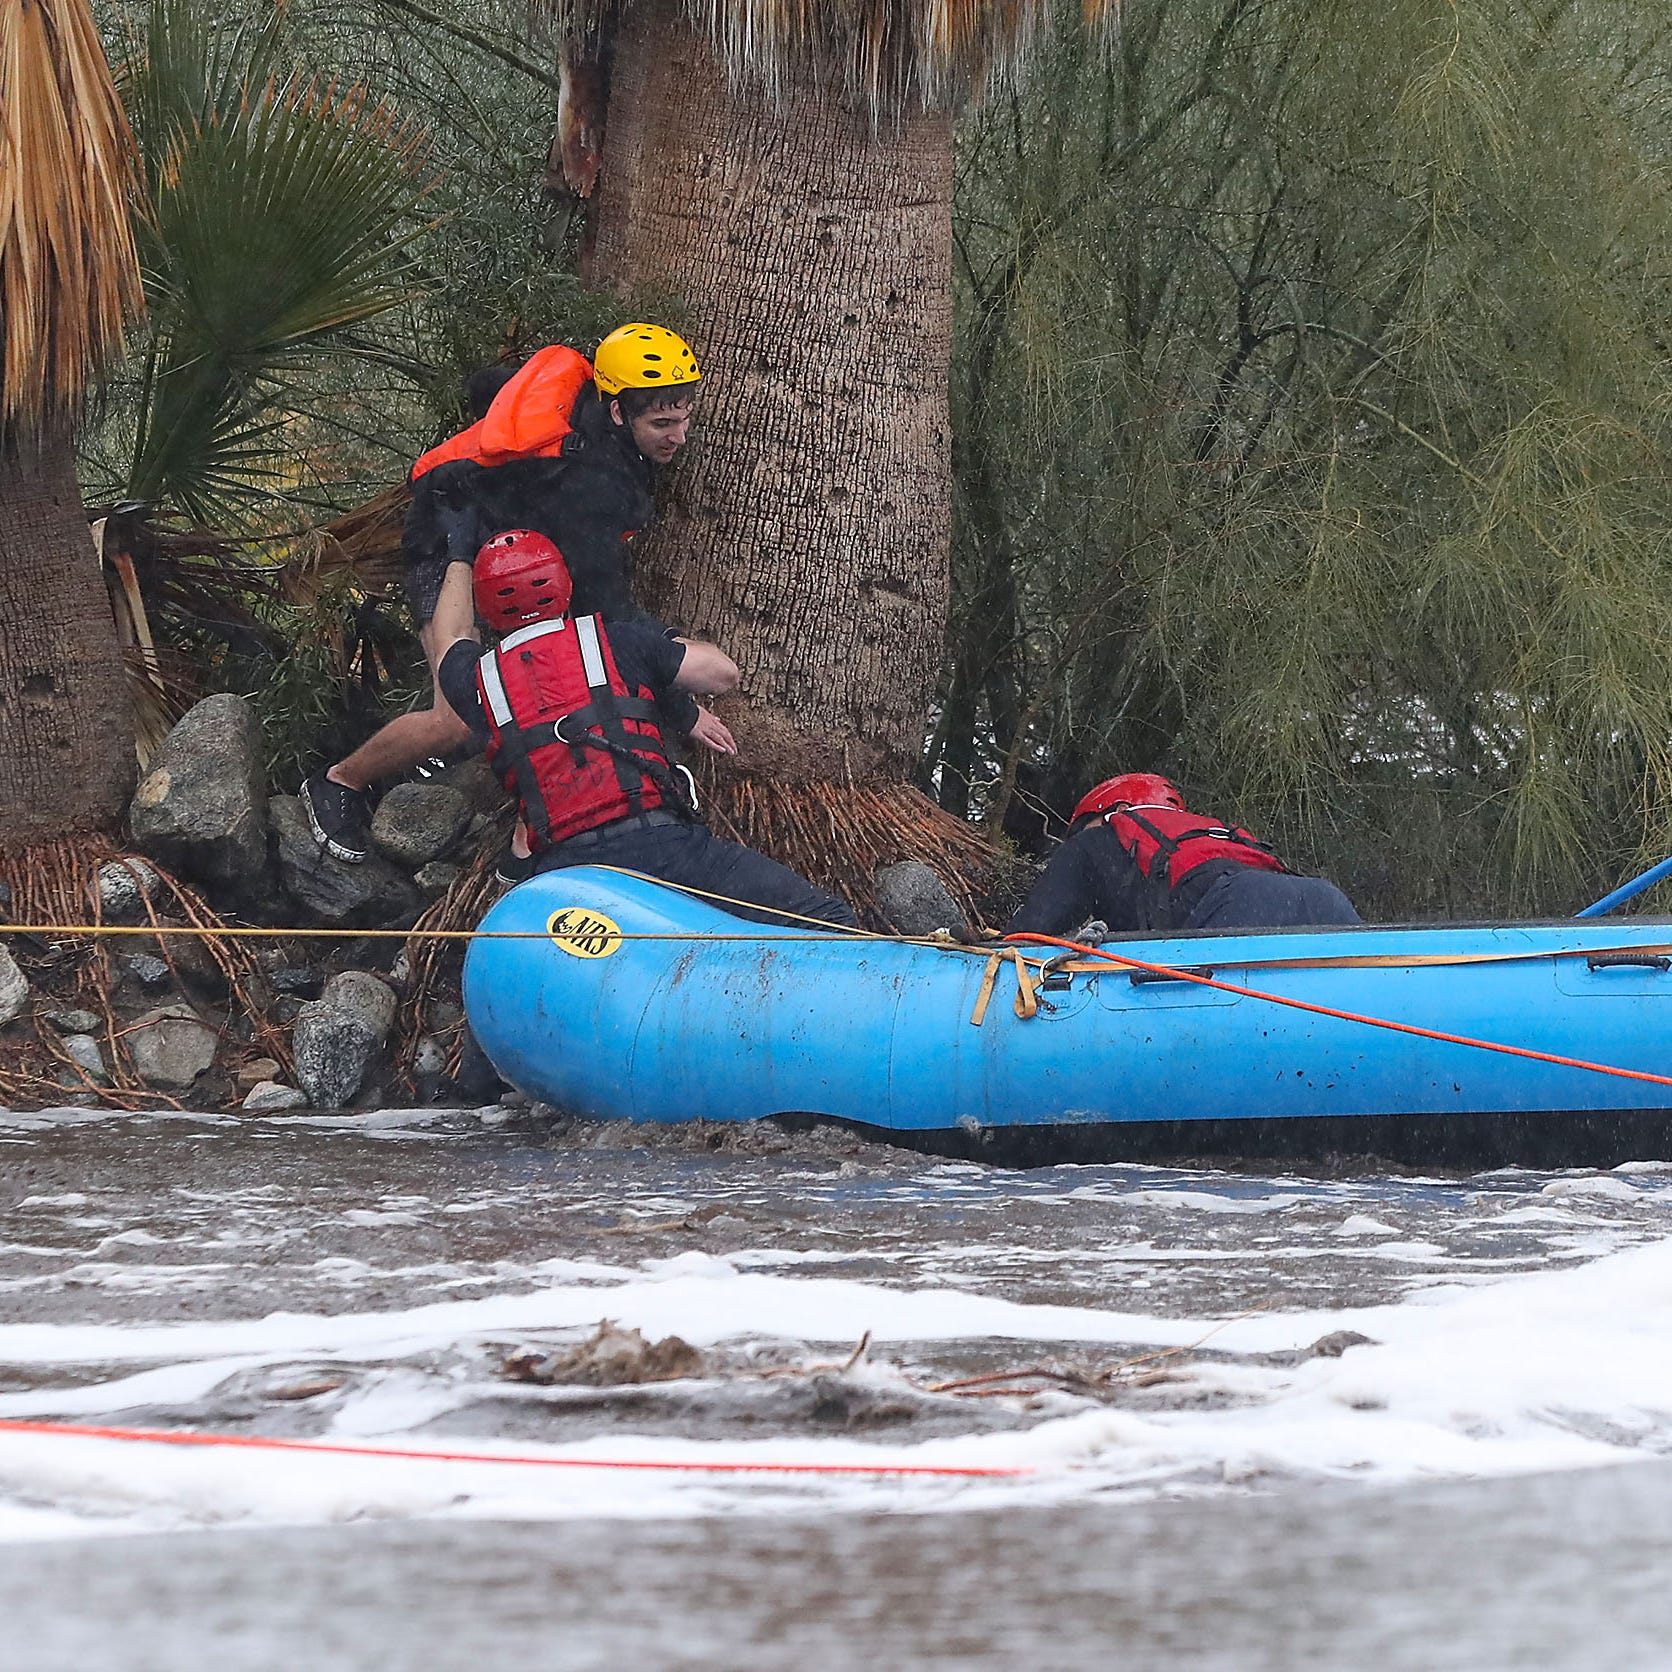 5 people rescued from floodwaters in Palm Springs, Desert Hot Springs after heavy rainfall